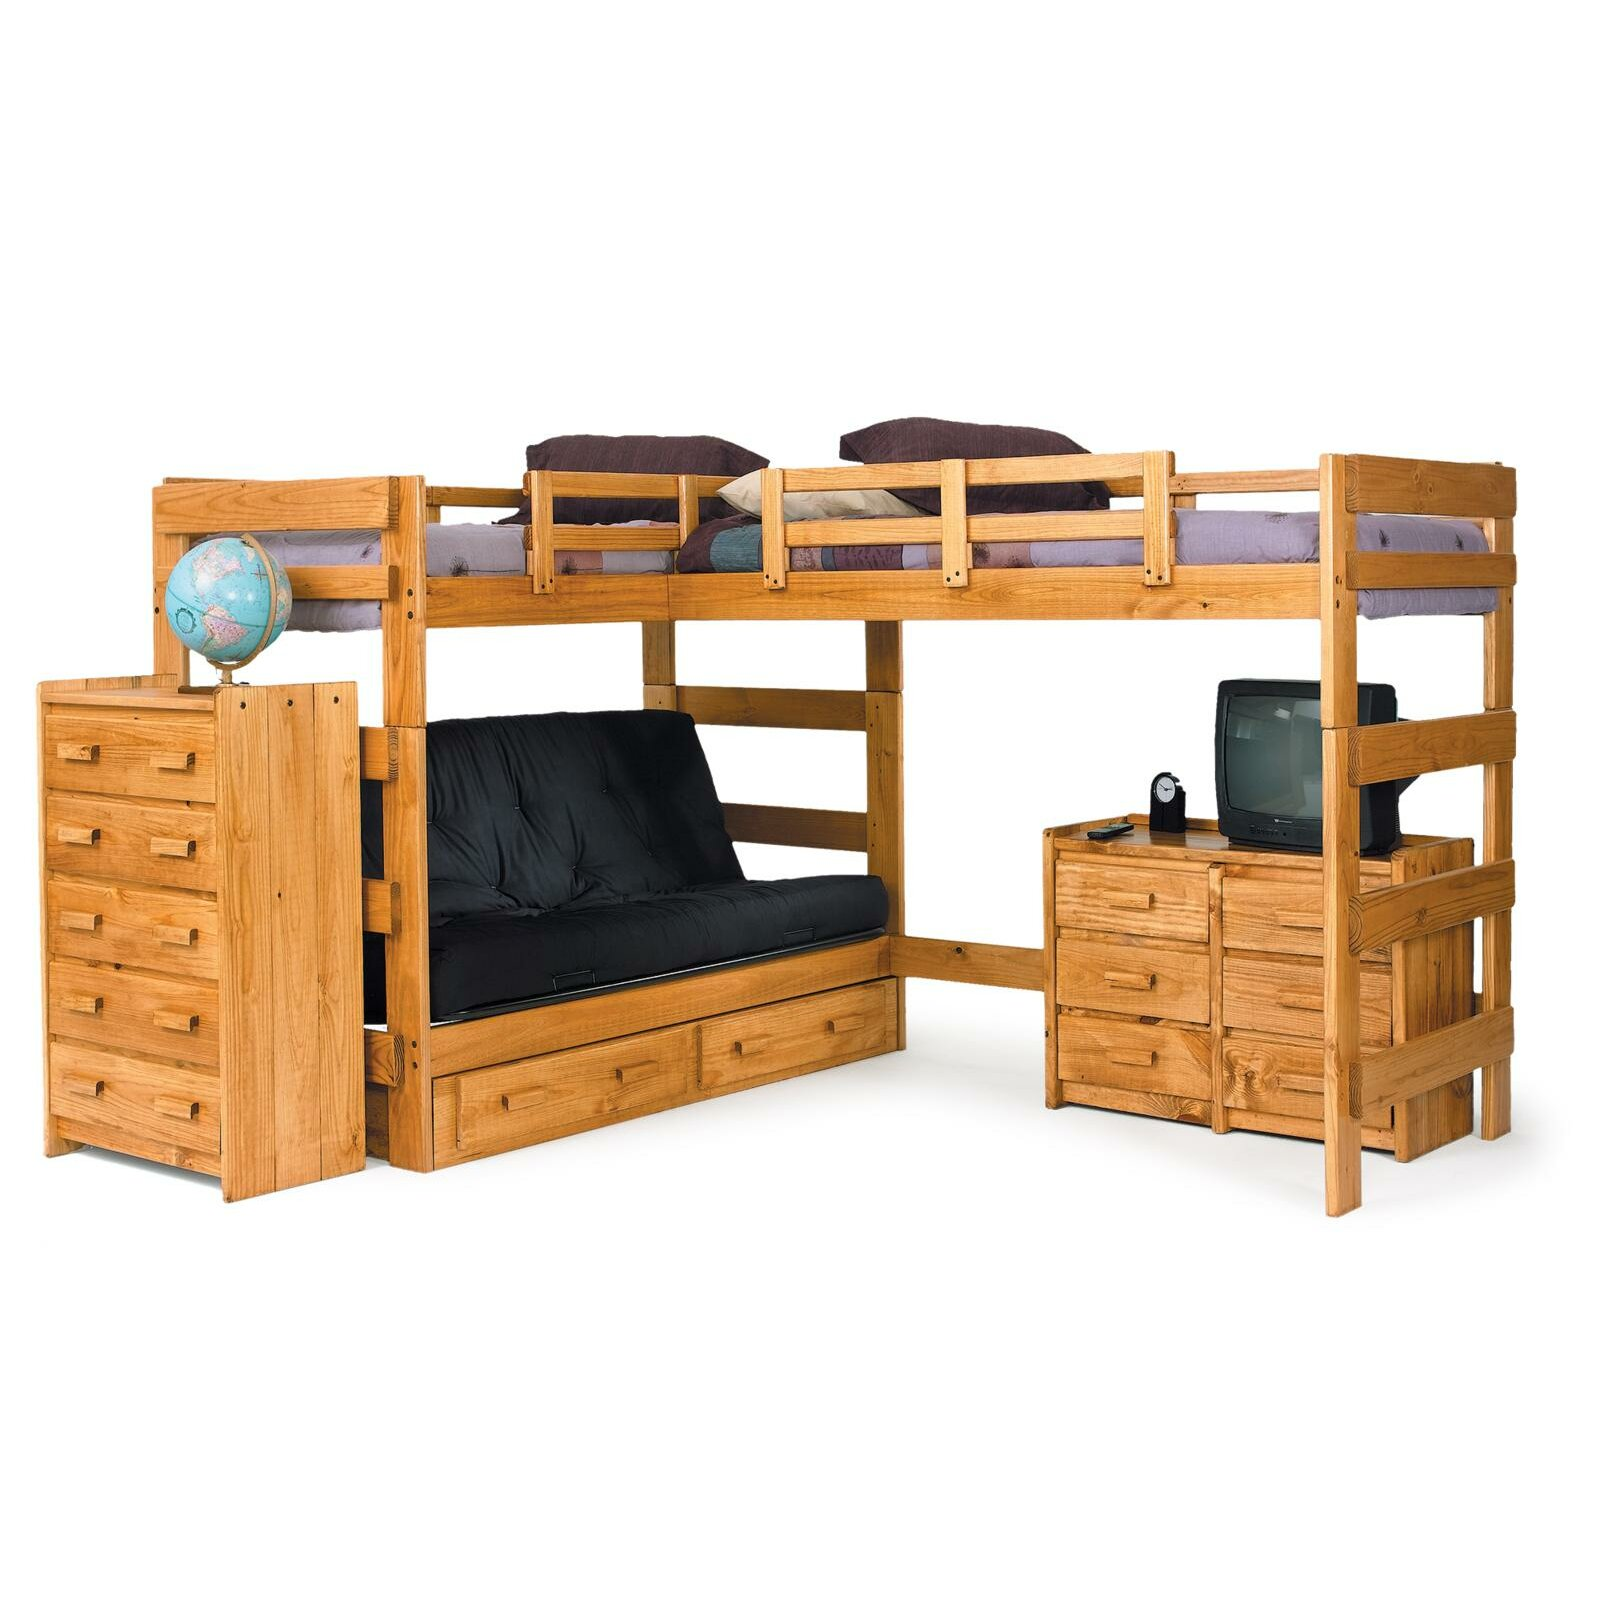 Double bunk beds with slide - L Shaped Bunk Bed